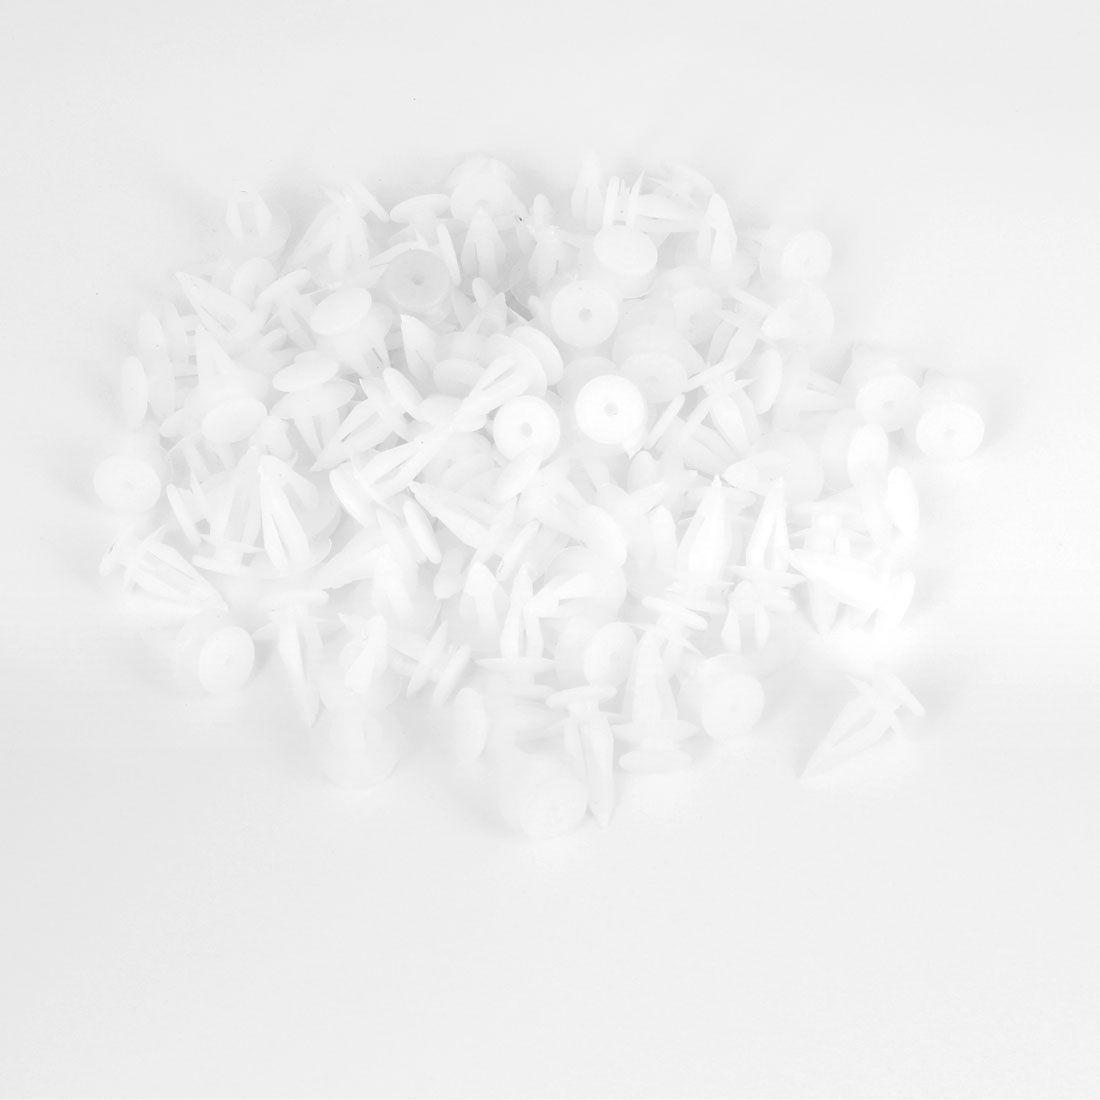 100 x Van Truck 7.4mm Hole White Door Plastic Replacement Rivets Fastener